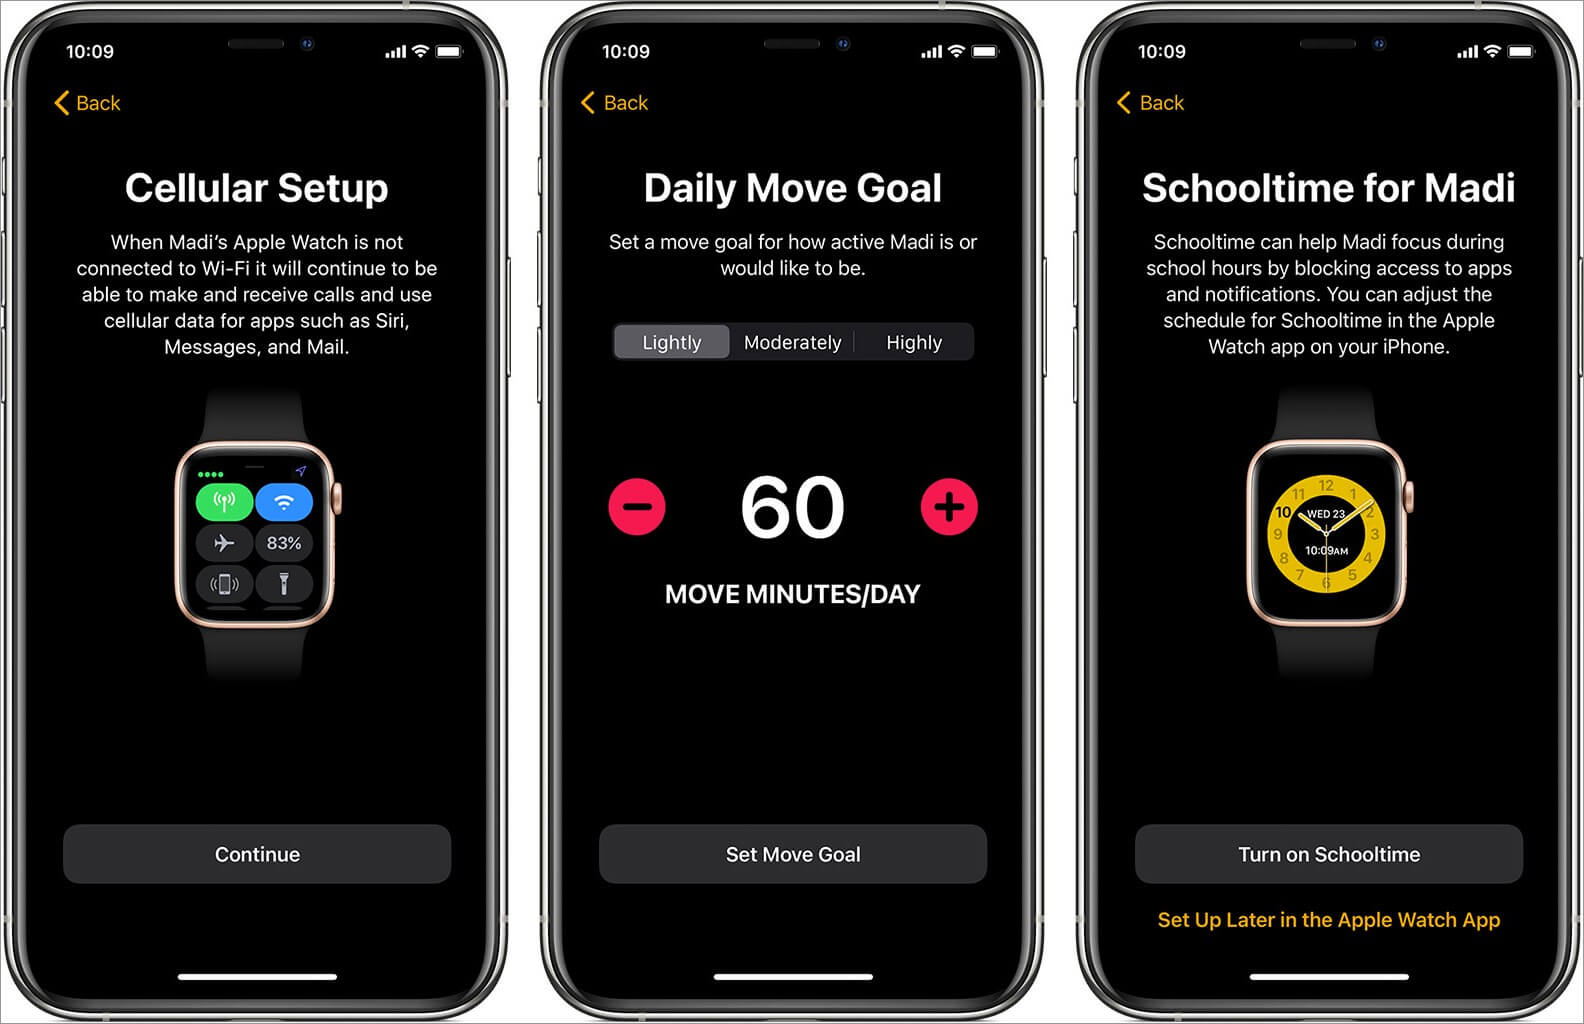 follow on screen instruction to set up an apple watch for family member